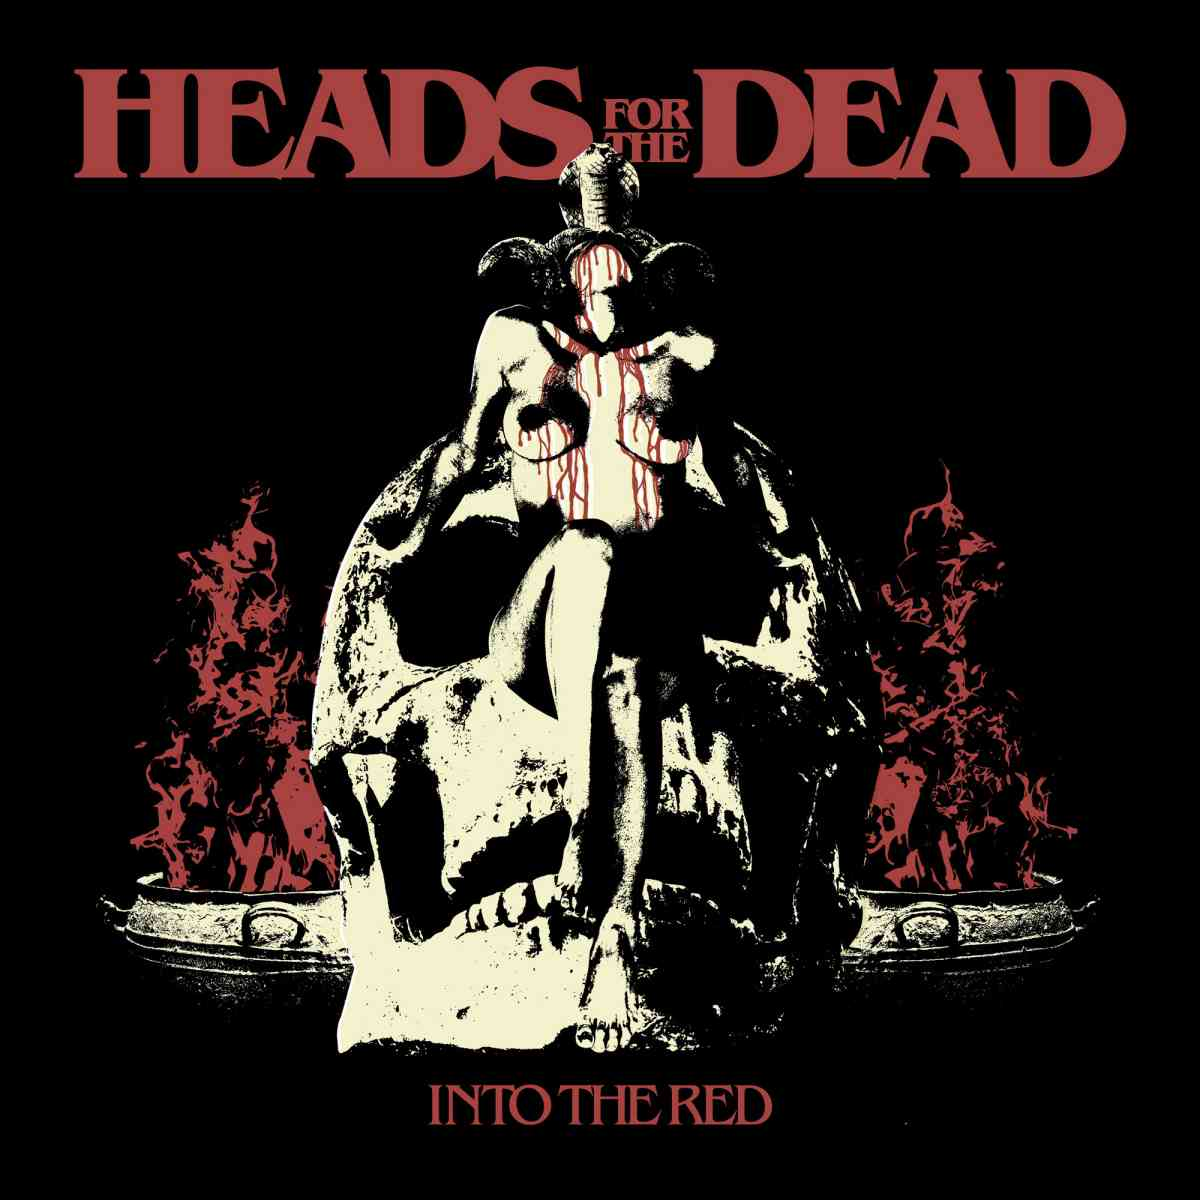 Into the Red - Heads for the Dead - album cover